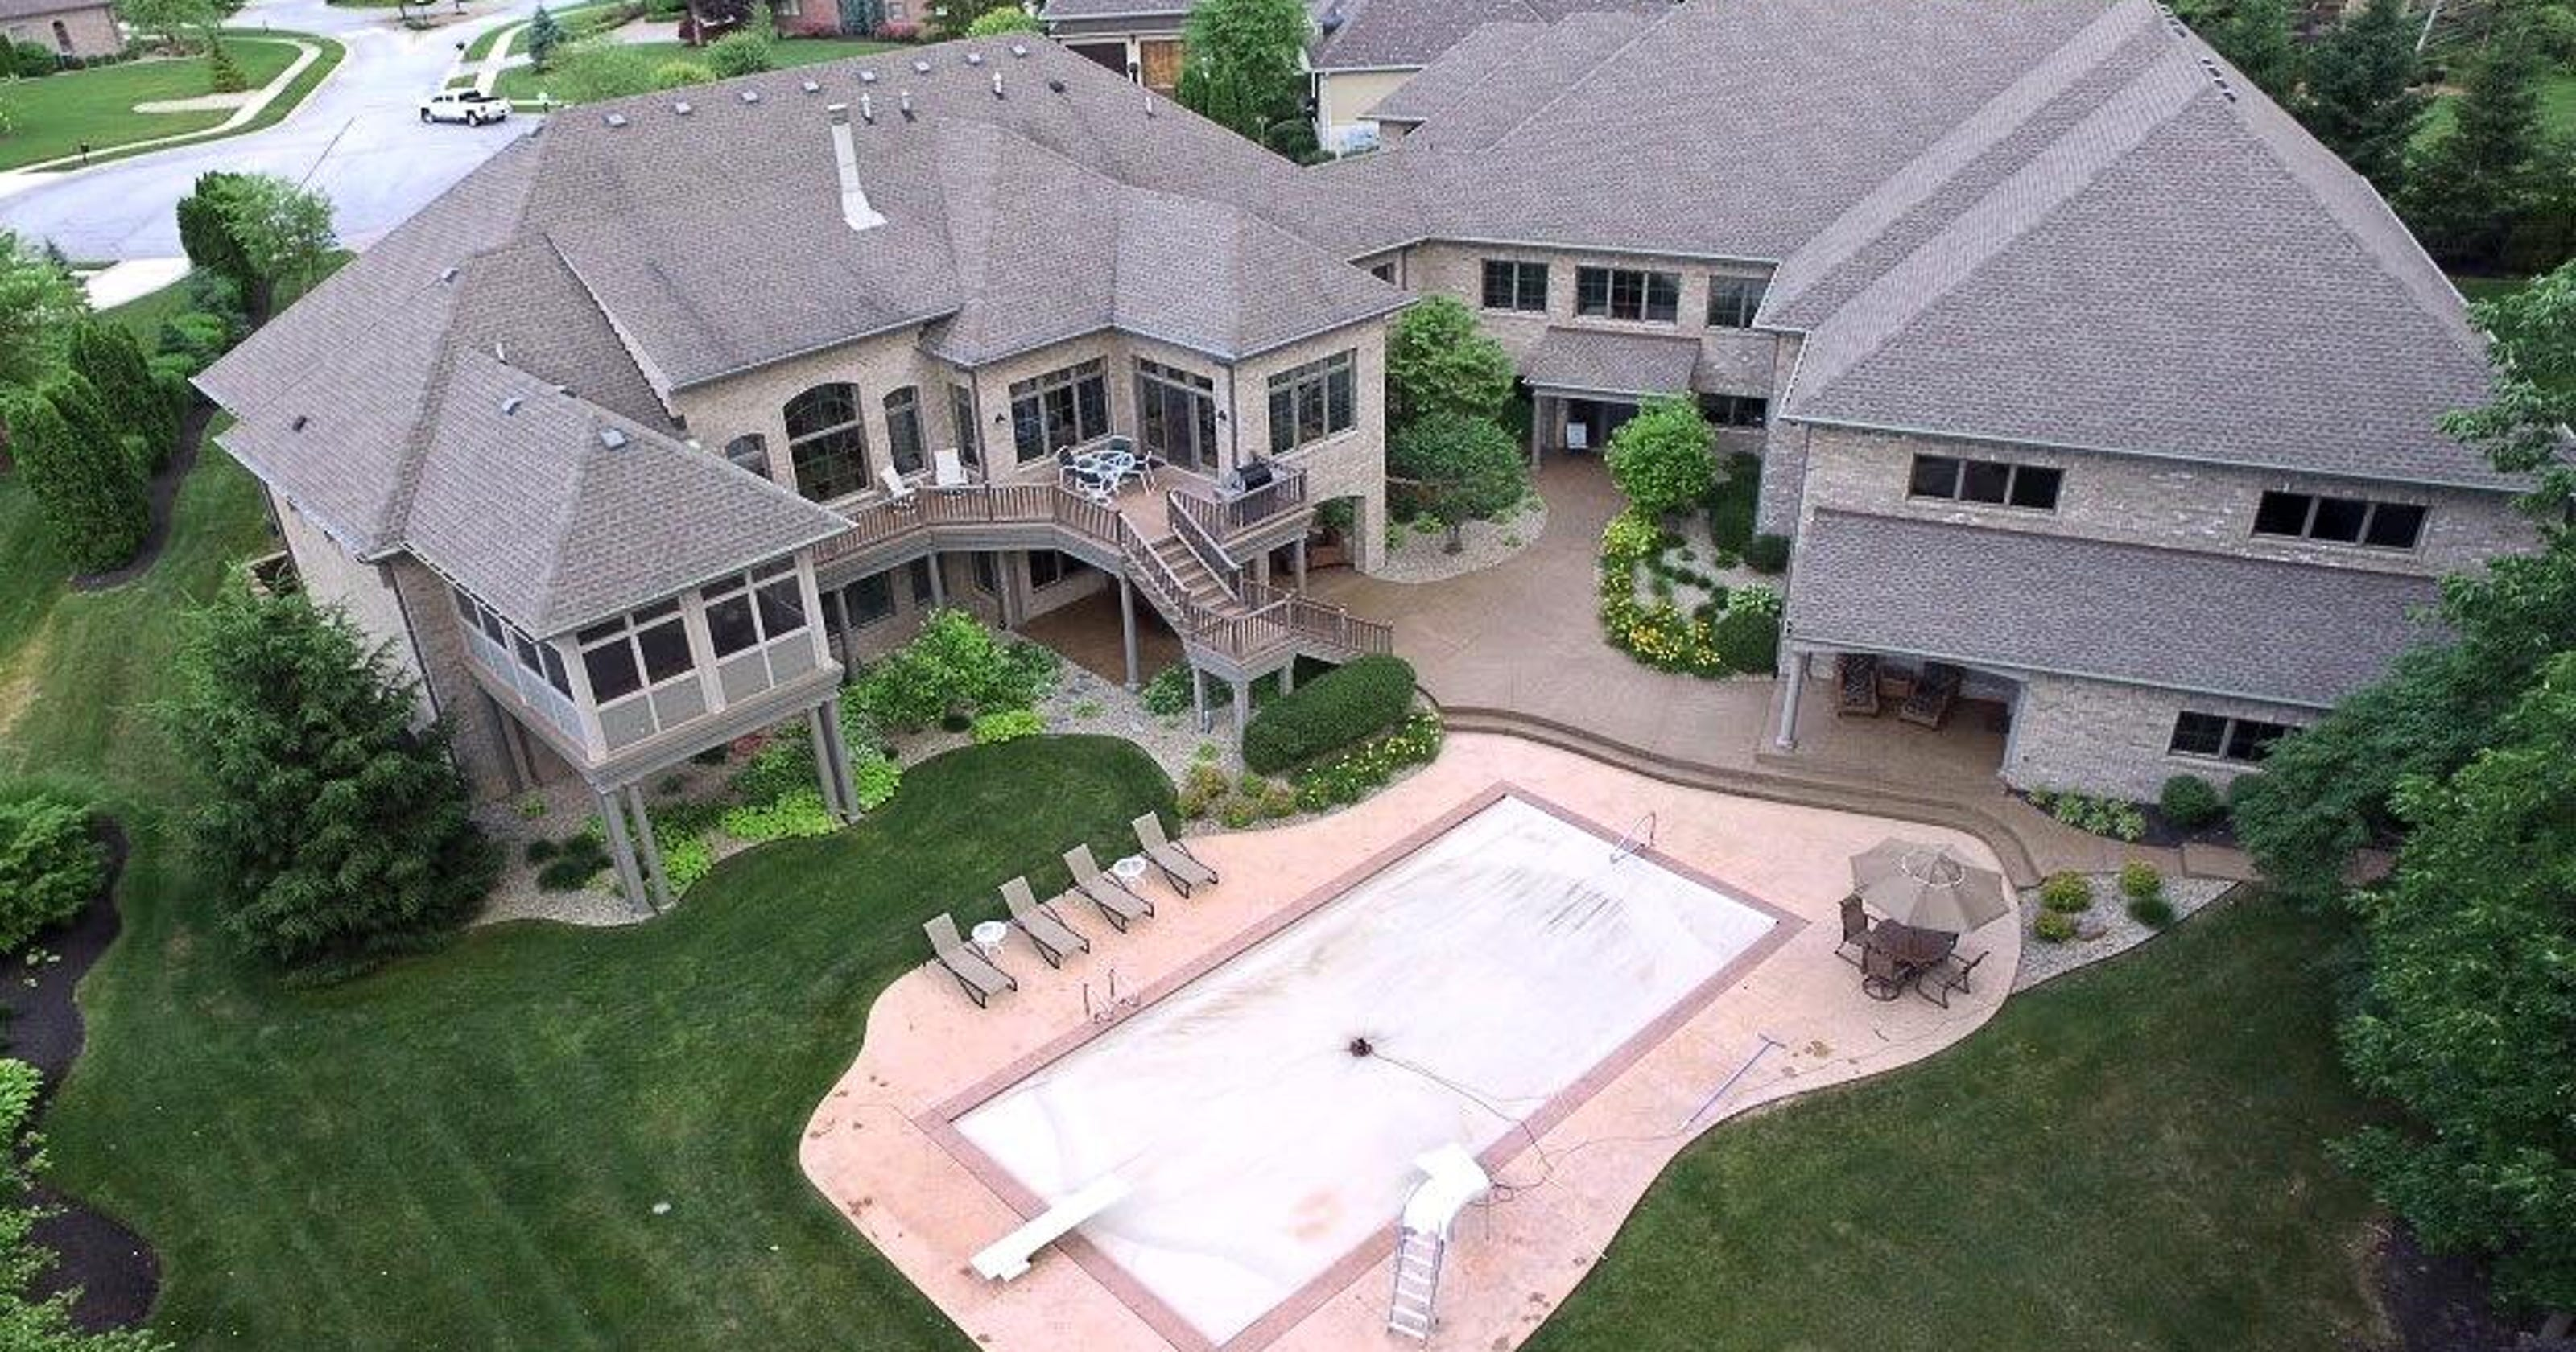 Hot Property: Priciest home for sale in Johnson County